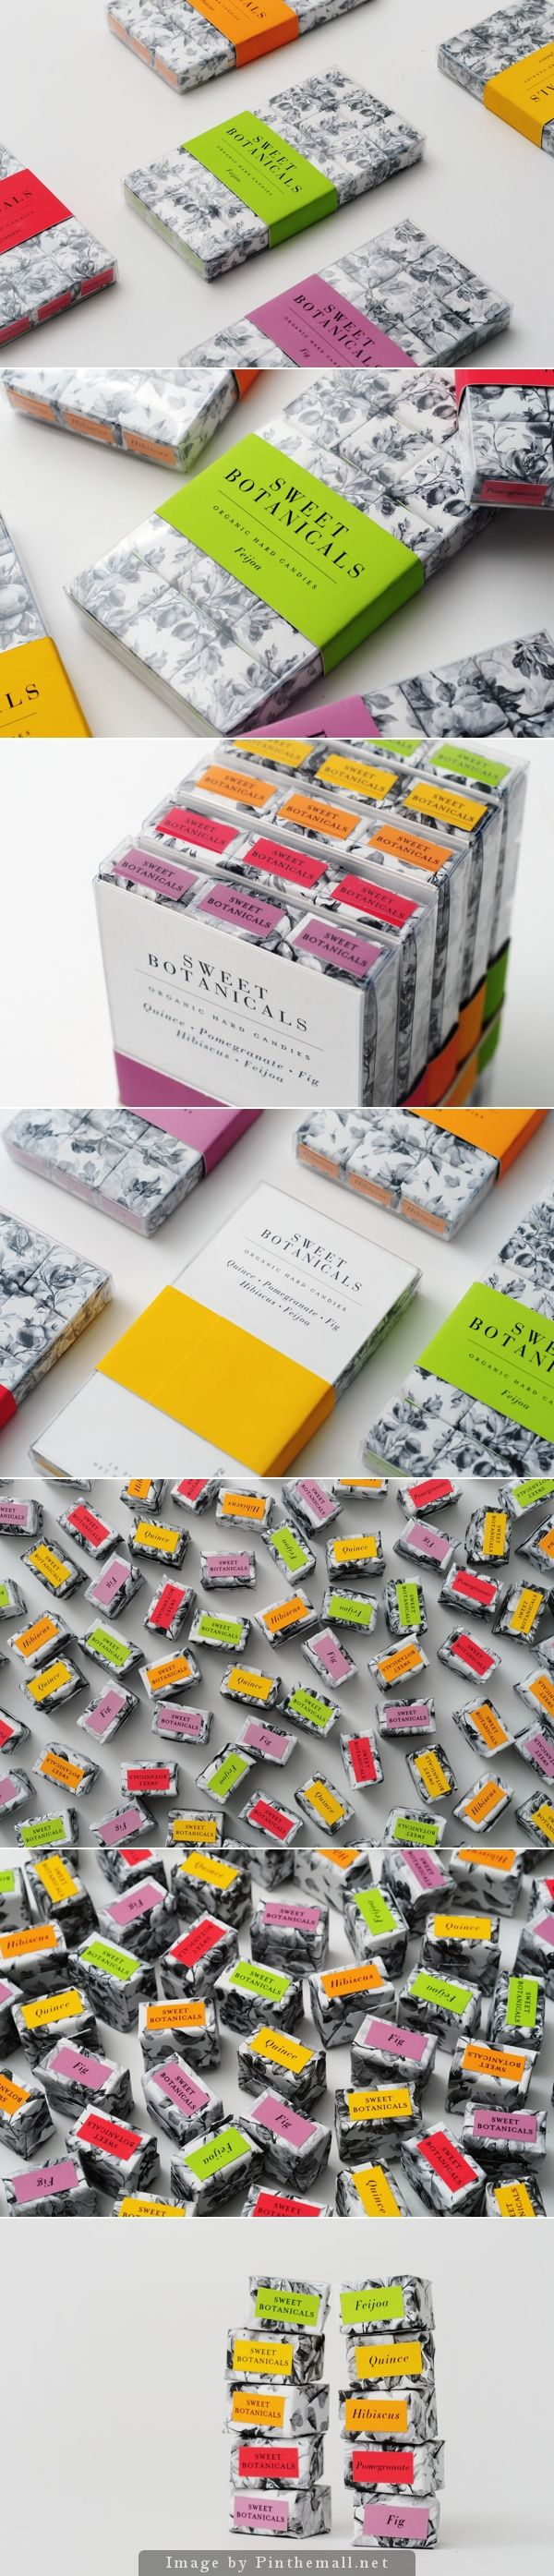 Sweet Botanicals organic hard candy in color coded packaging PD